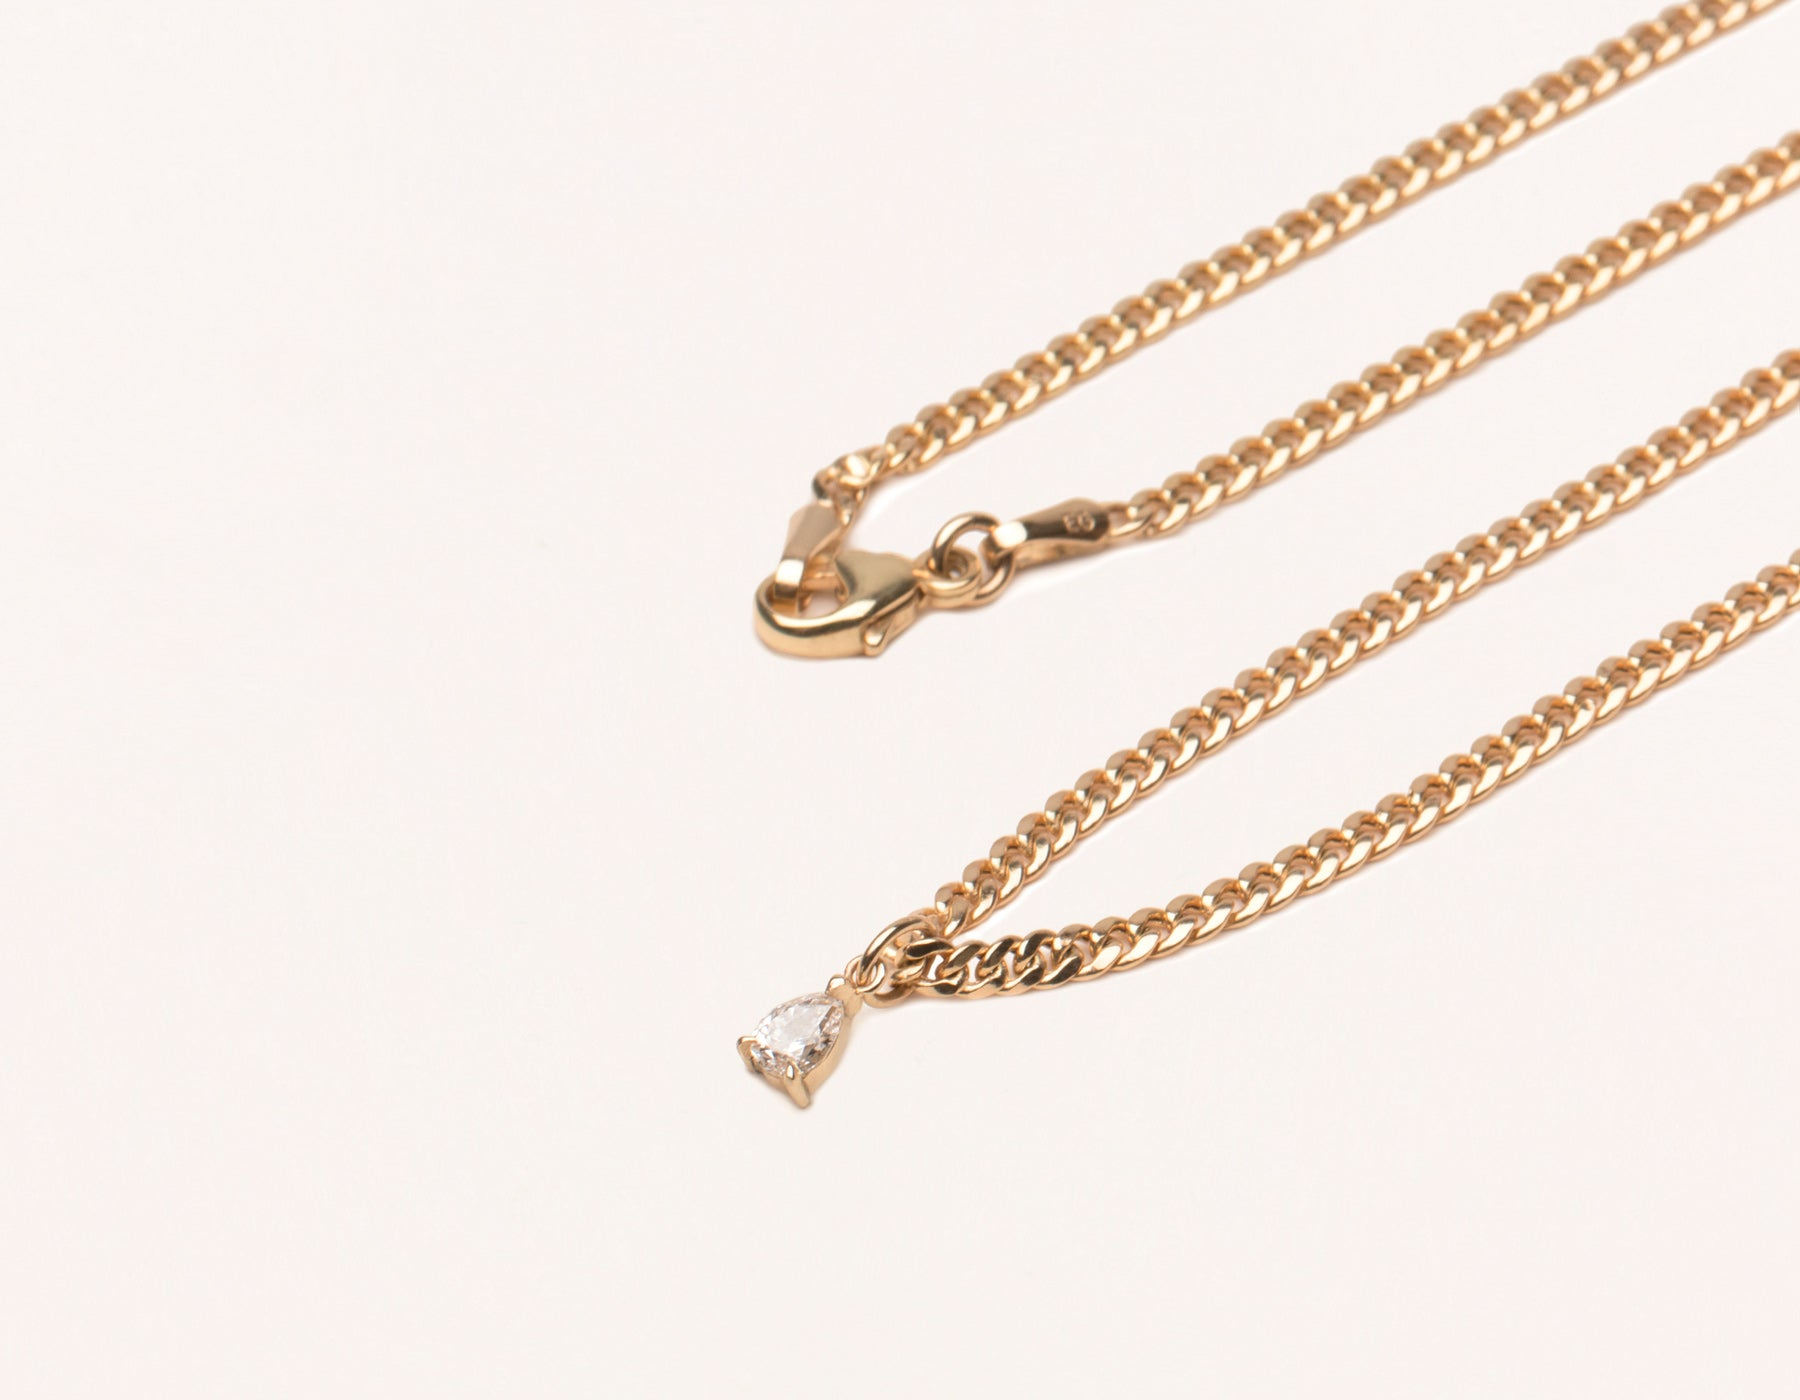 Simple Classic 14K Solid Gold Pear Diamond Pendant on thick Cuban Link chain with lobster clasp Vrai & oro, 14K Rose Gold